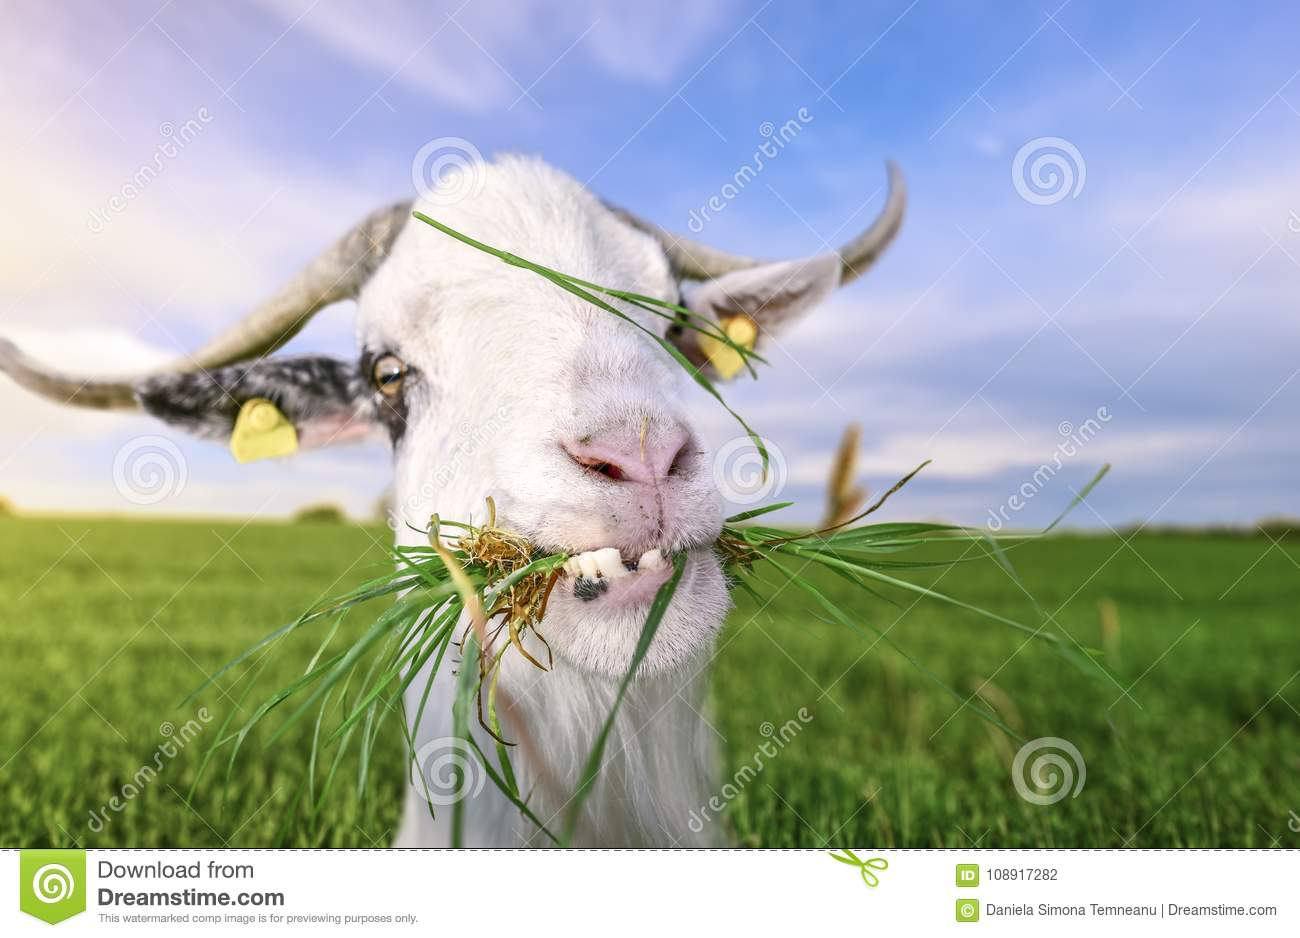 Goat with funny teeth and grass in mouth